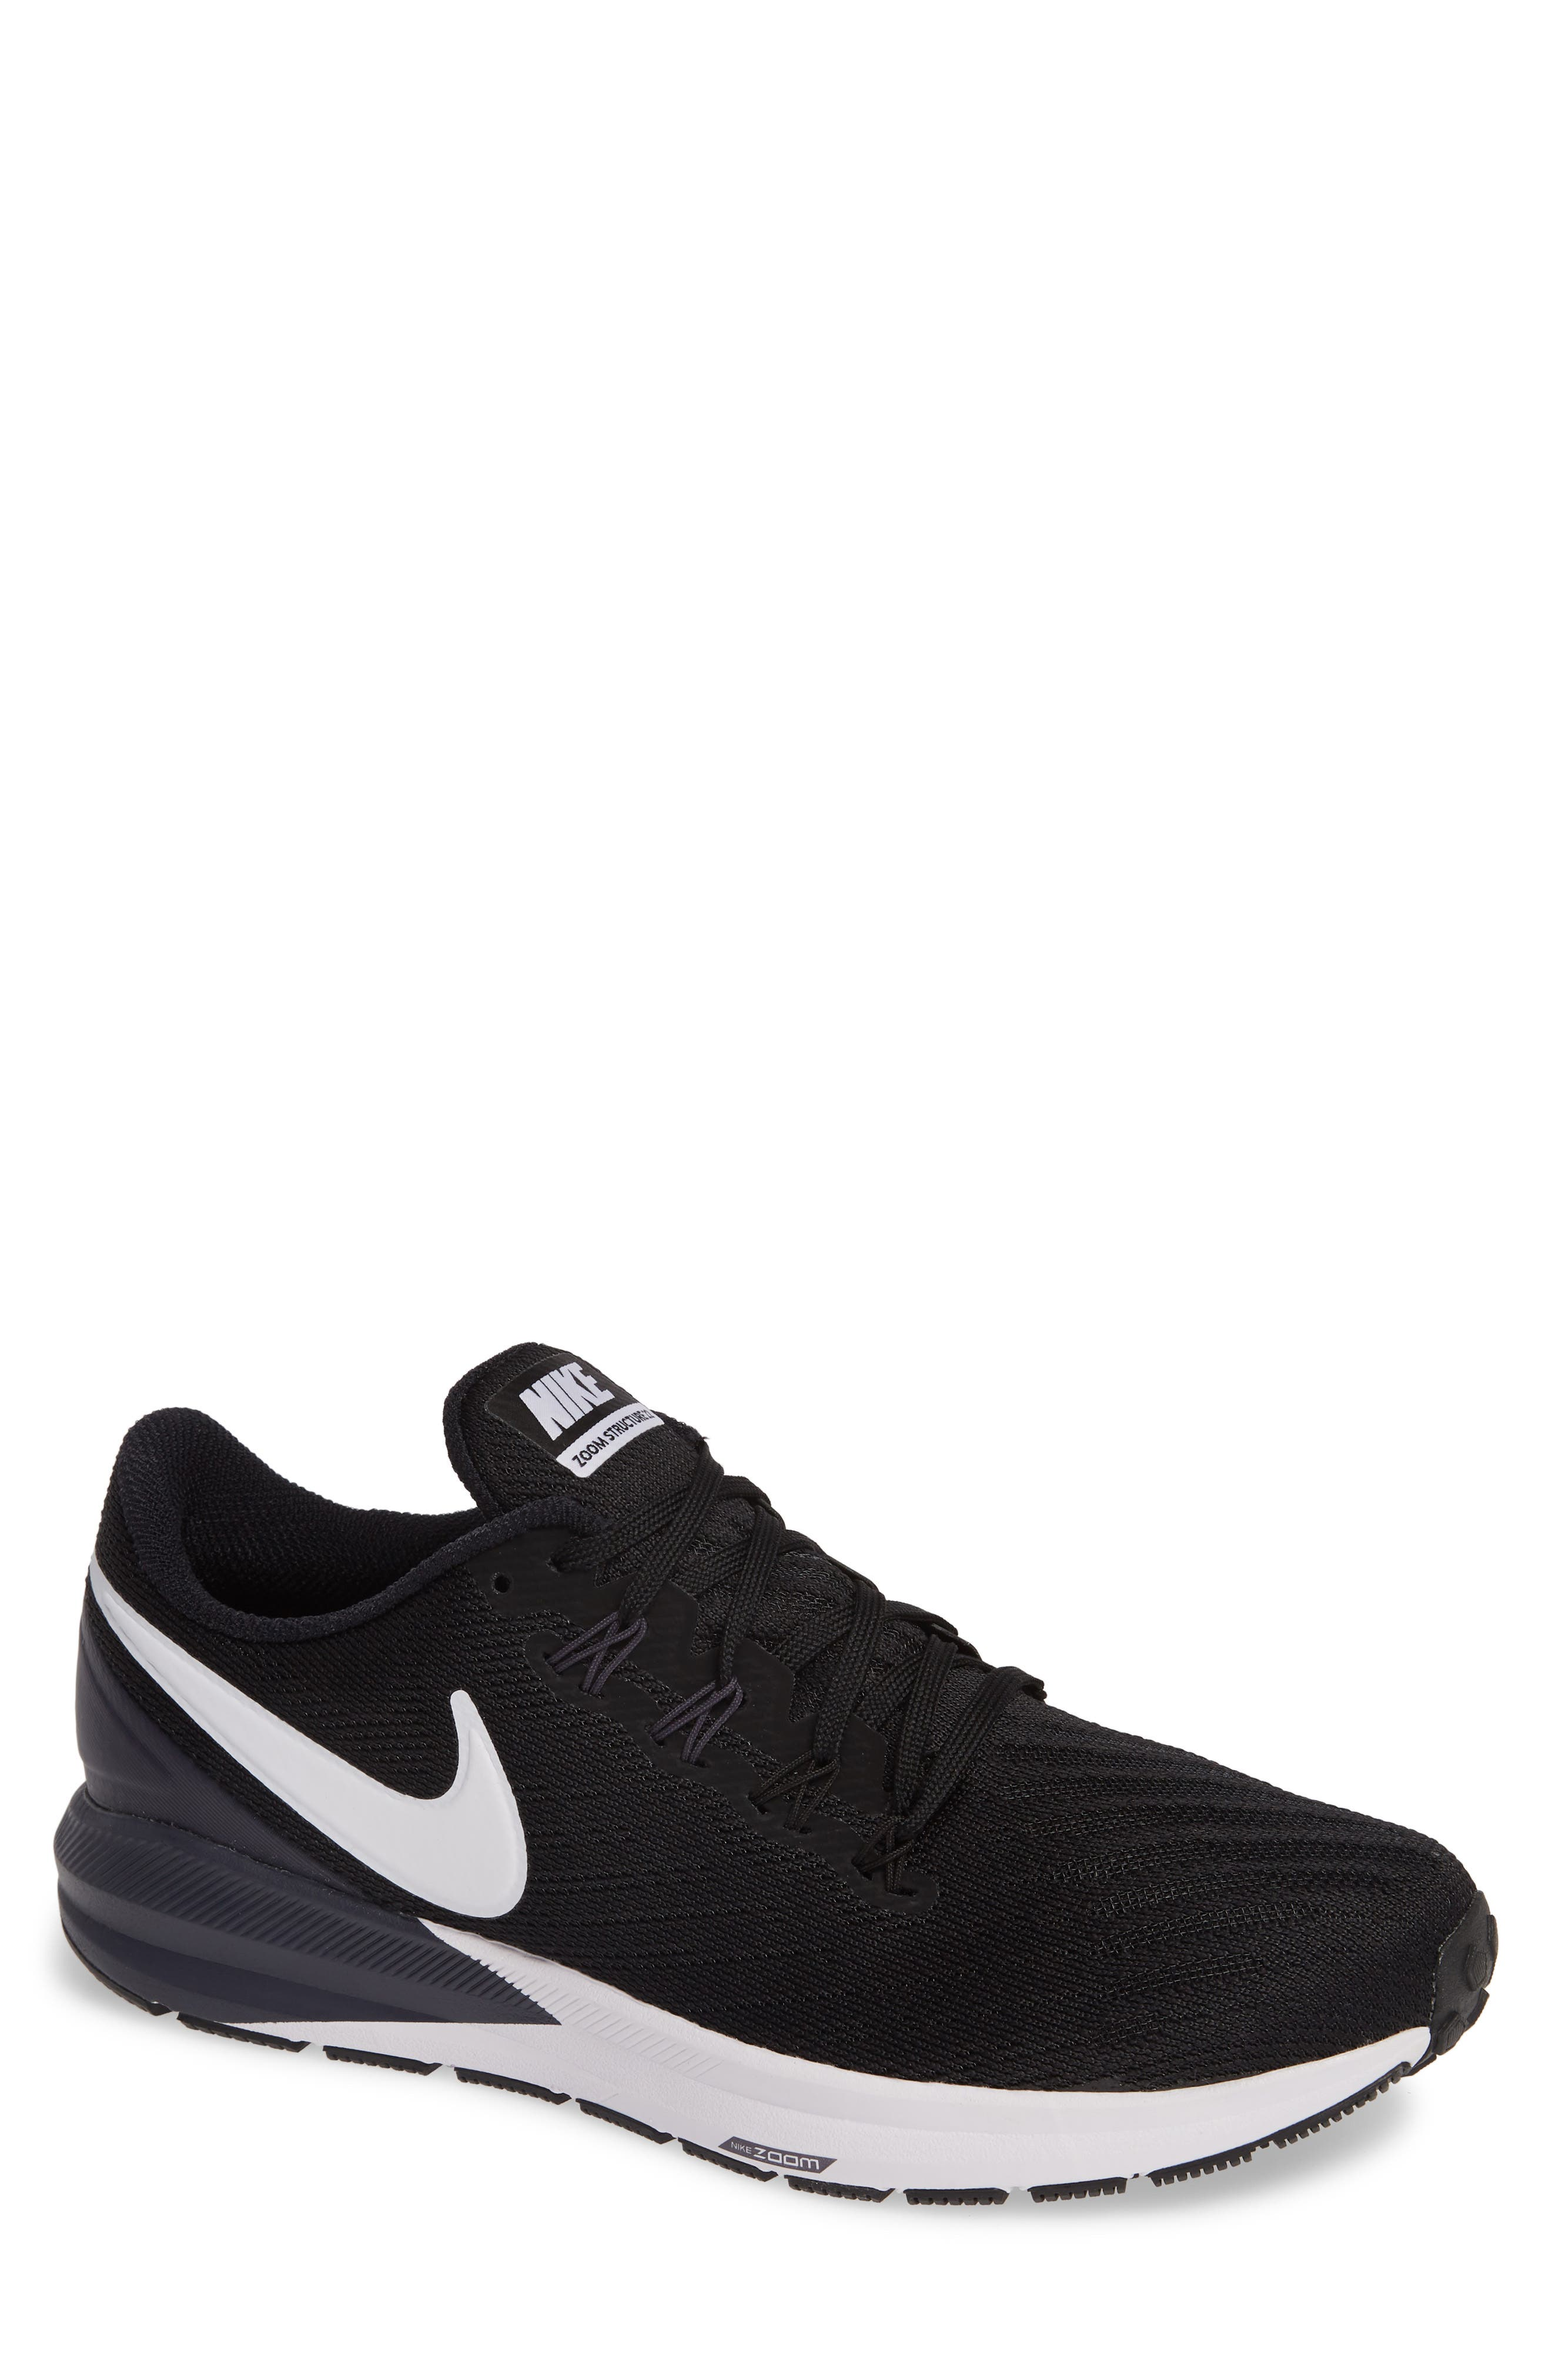 Air Zoom Structure 22 Running Shoe,                             Main thumbnail 1, color,                             BLACK/ WHITE/ GRIDIRON